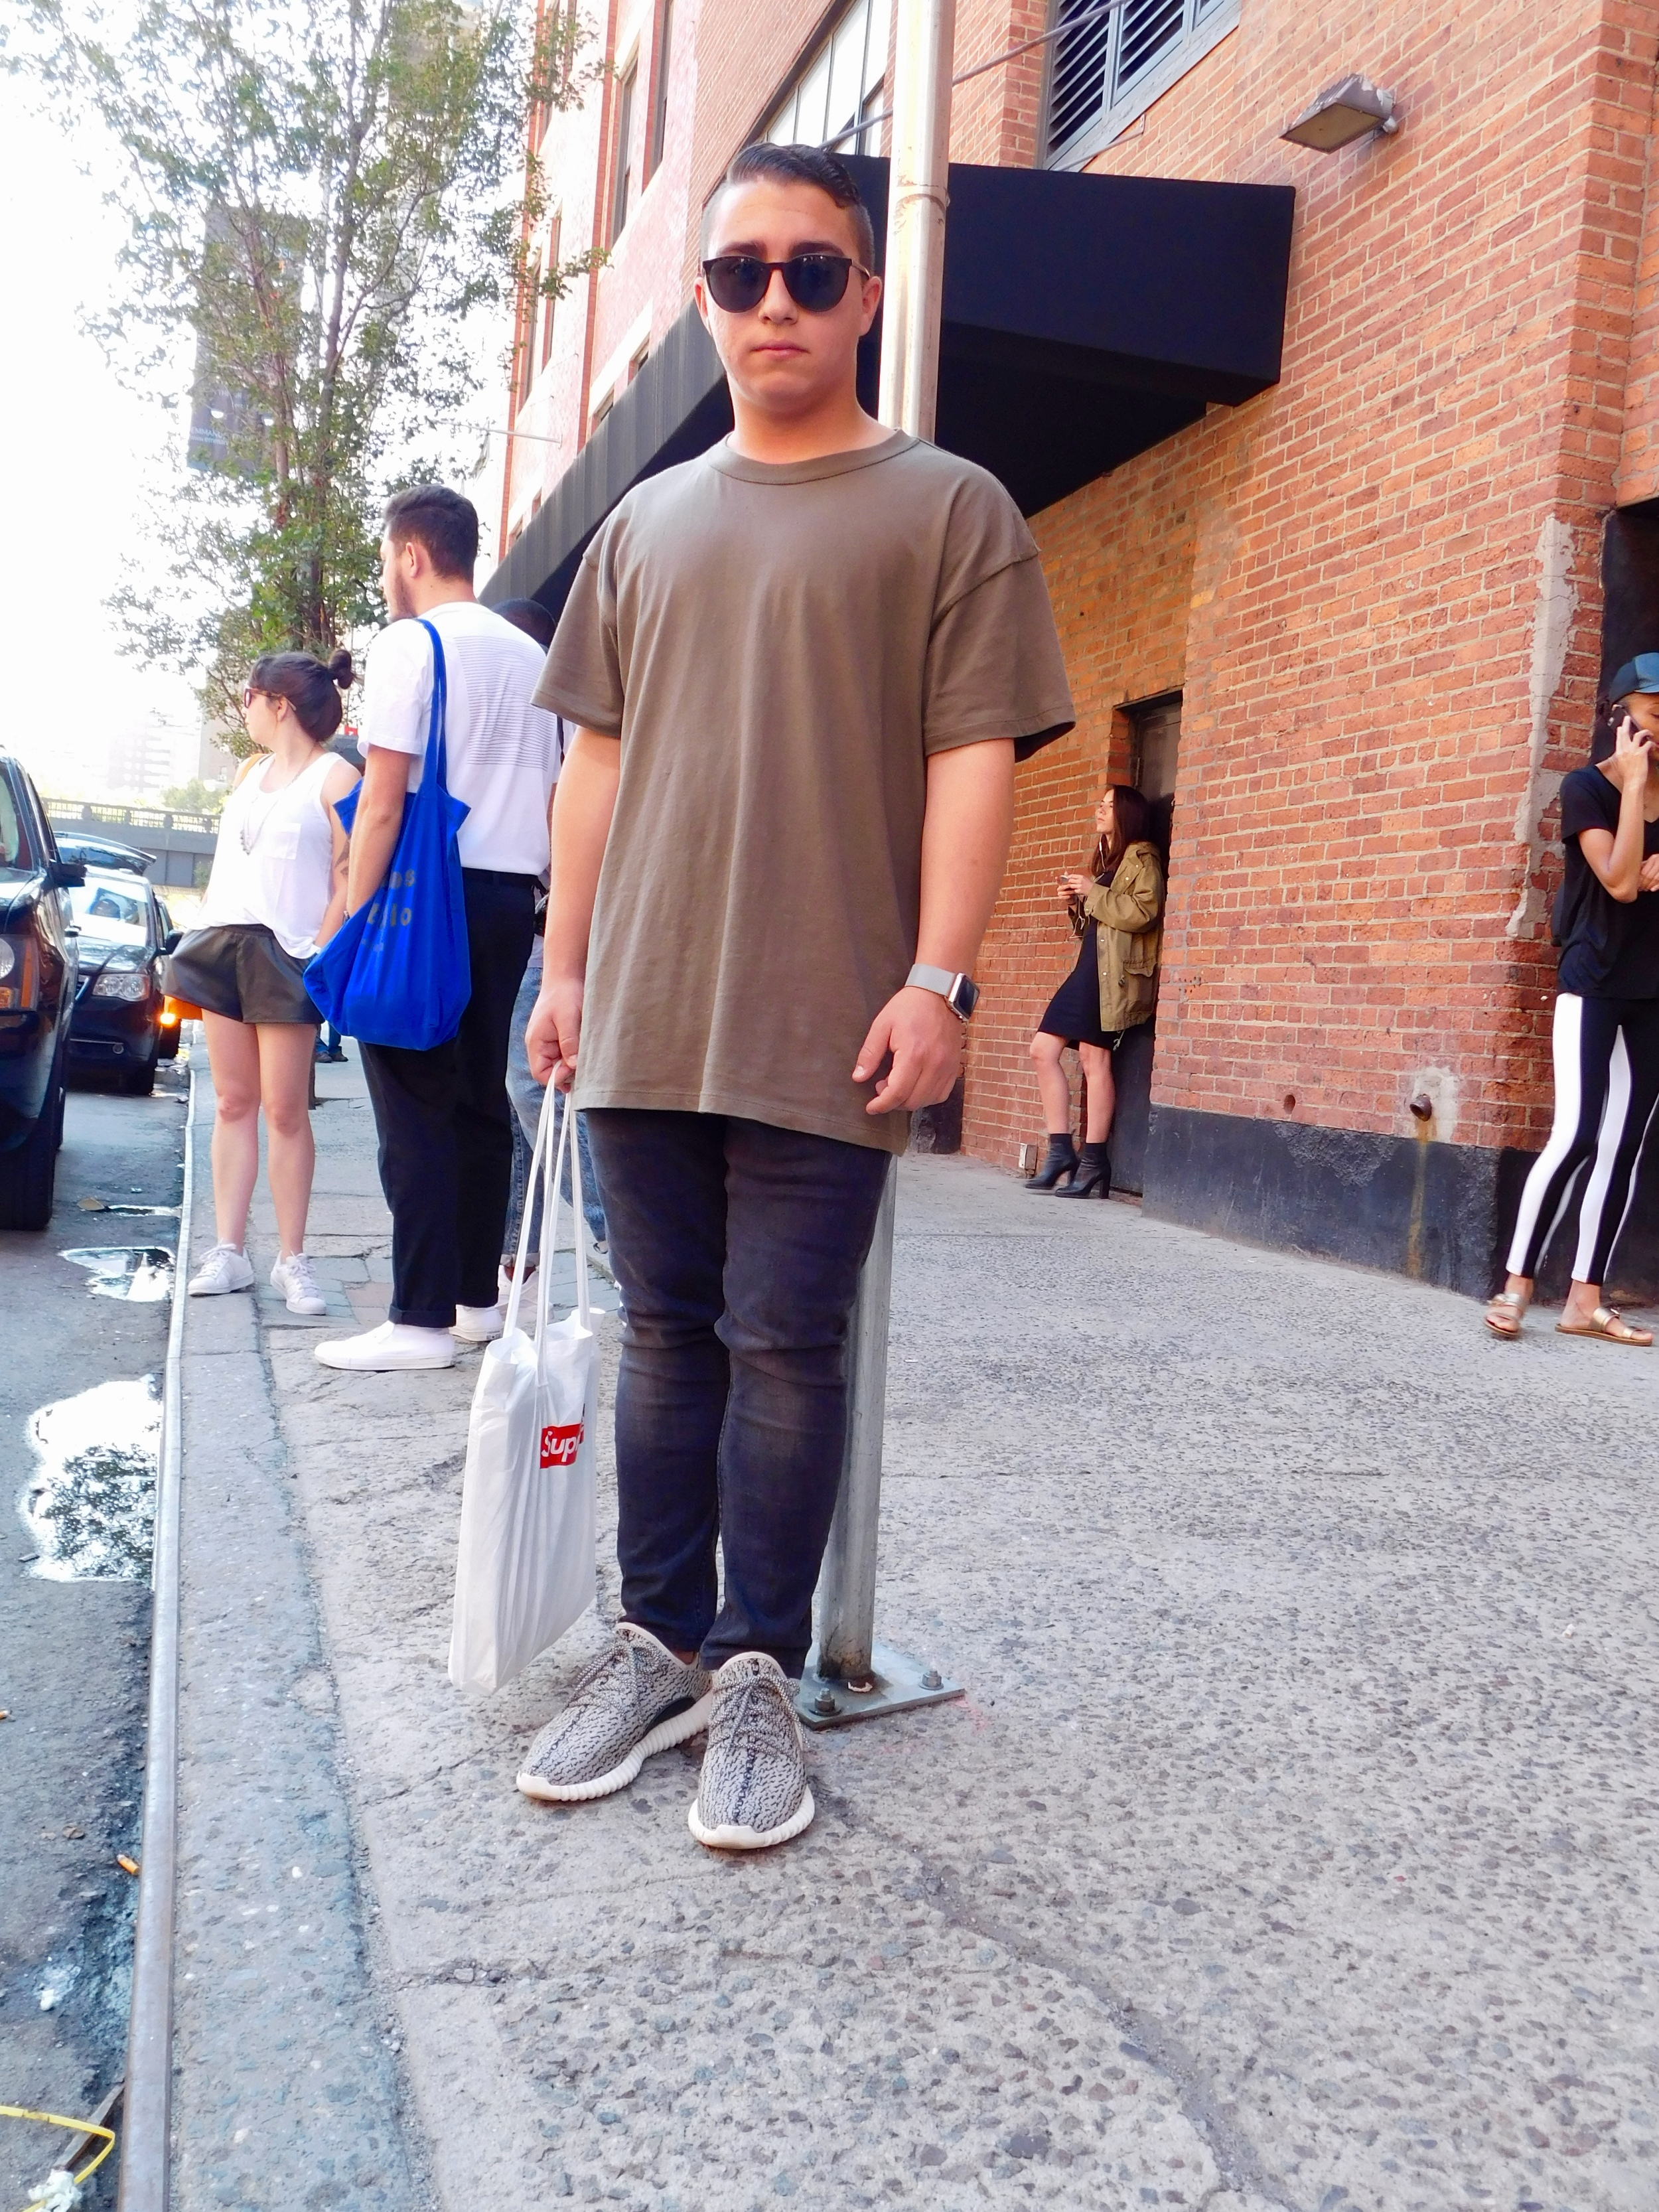 Corey D'Angelo wearing Fear of God with his Yeezy 350 boosts.